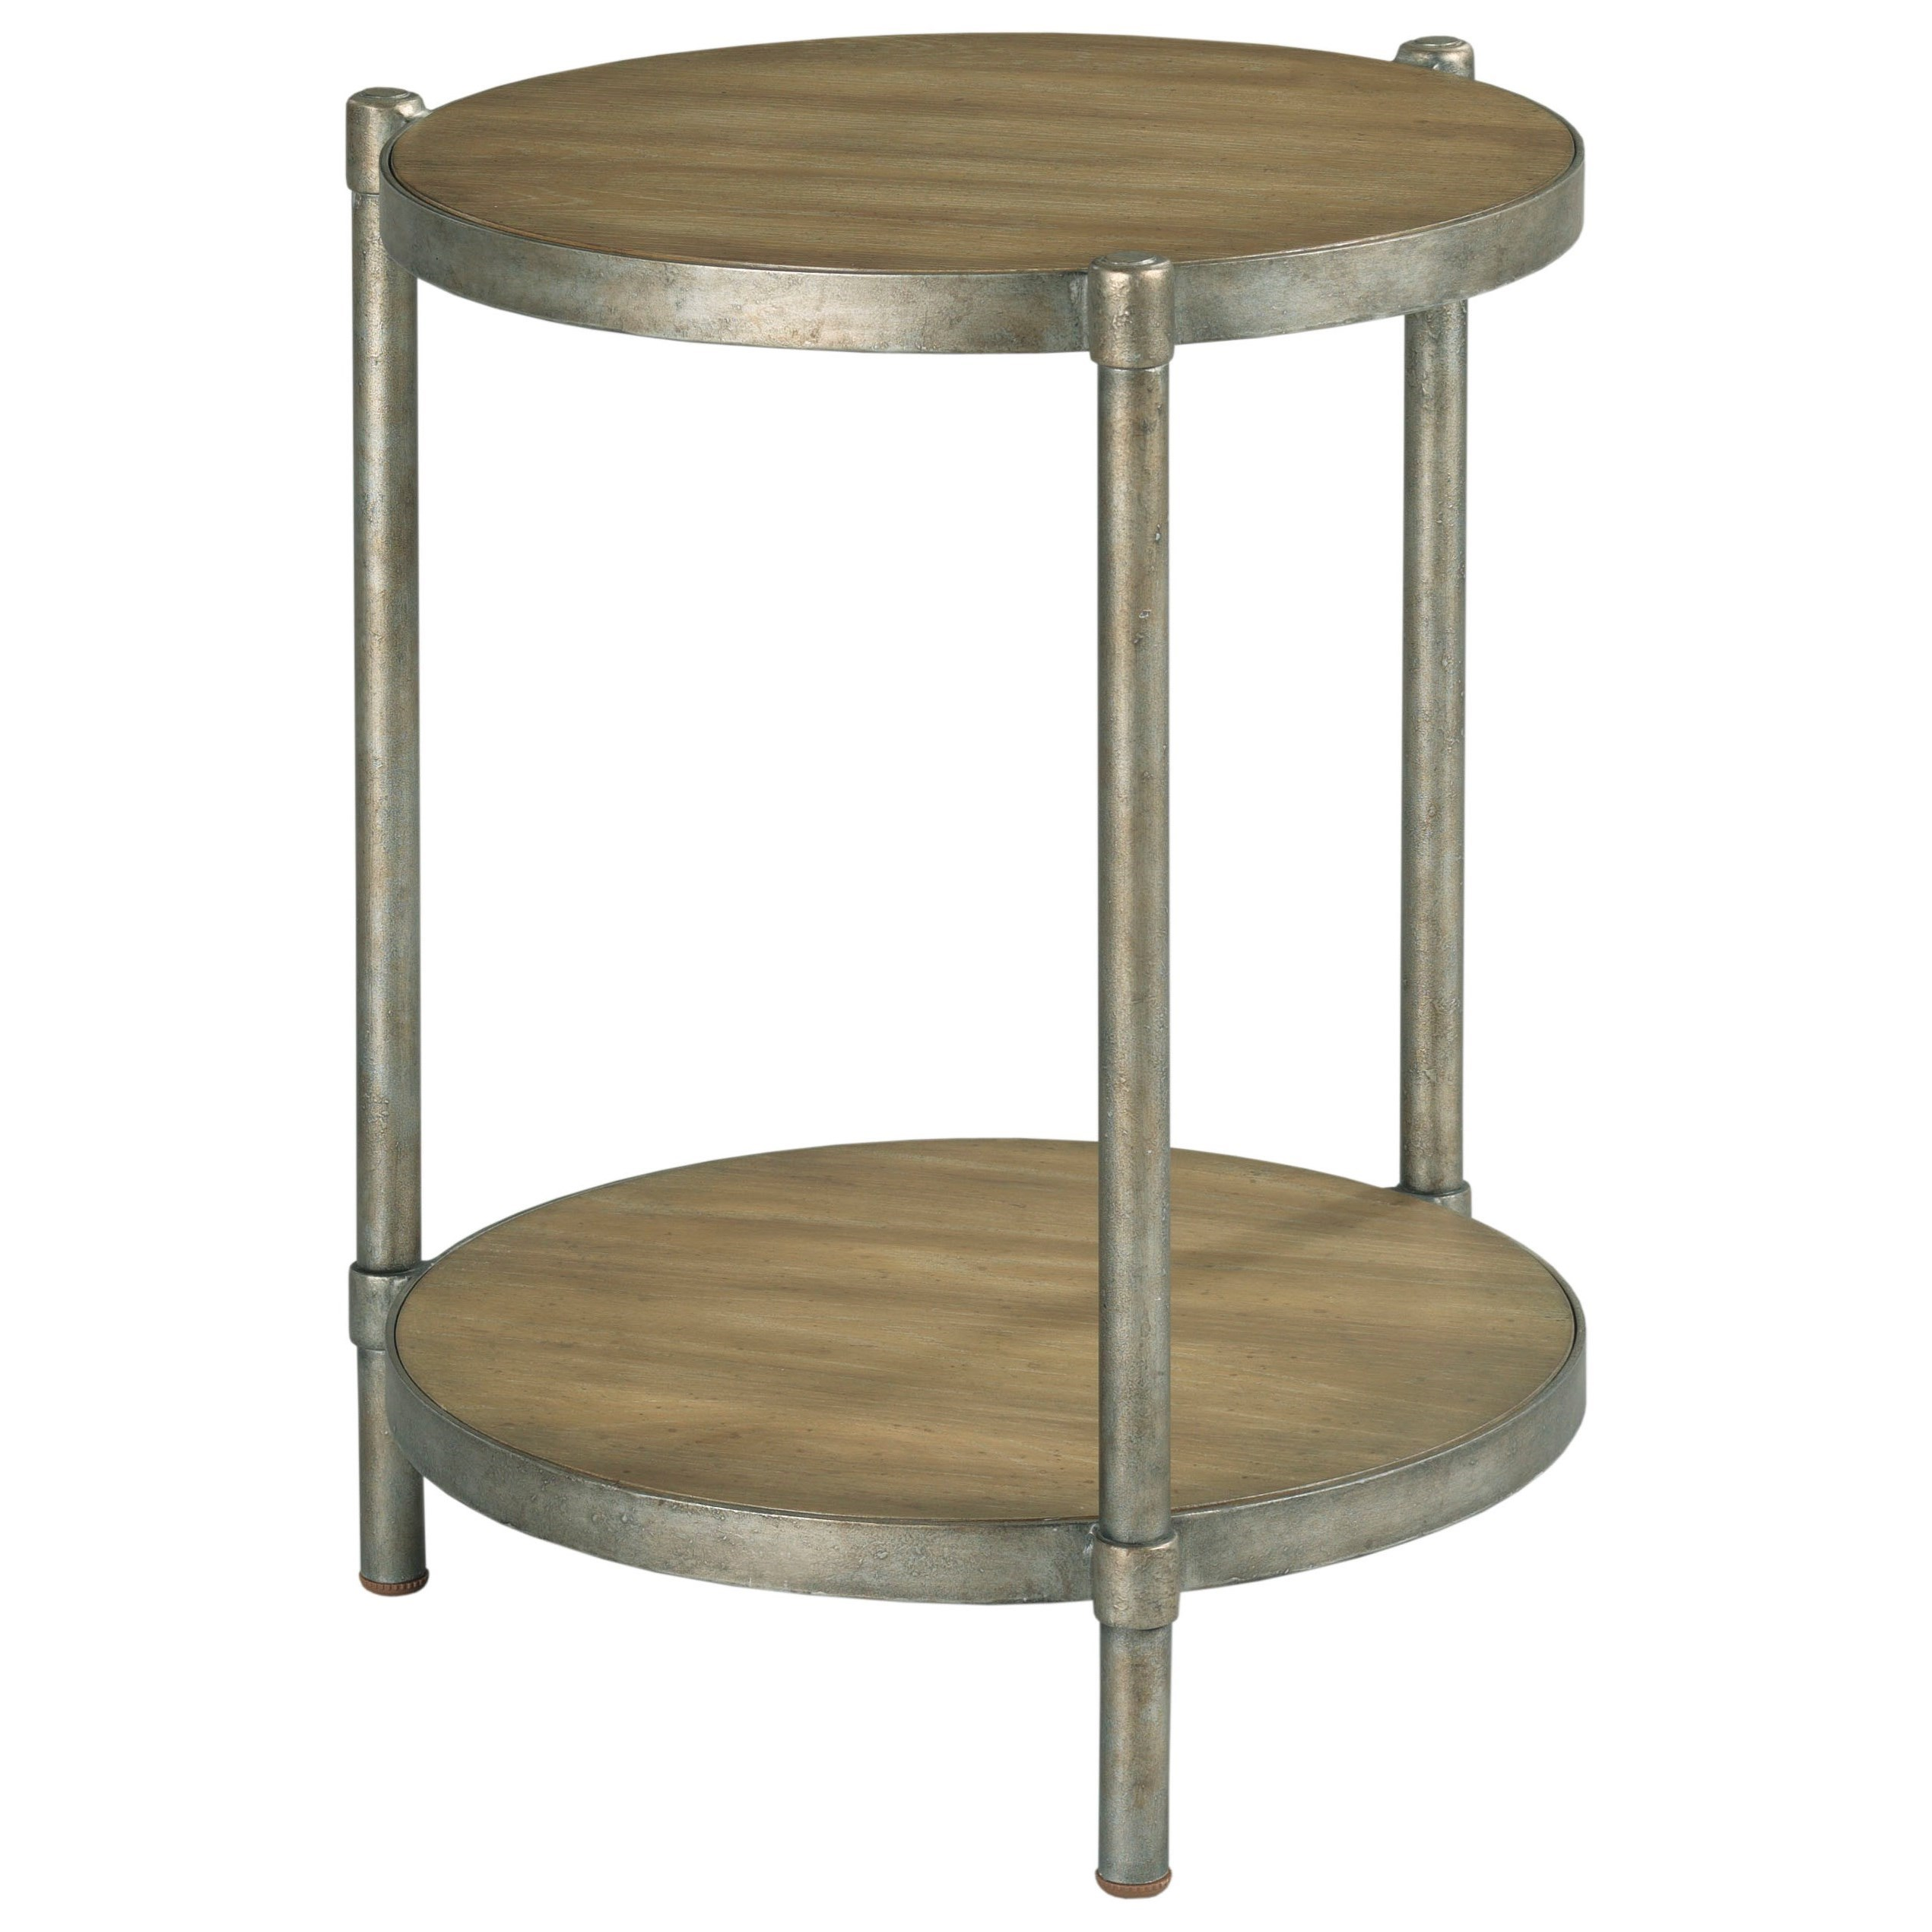 Astor Round Accent Table by Hammary at Crowley Furniture & Mattress